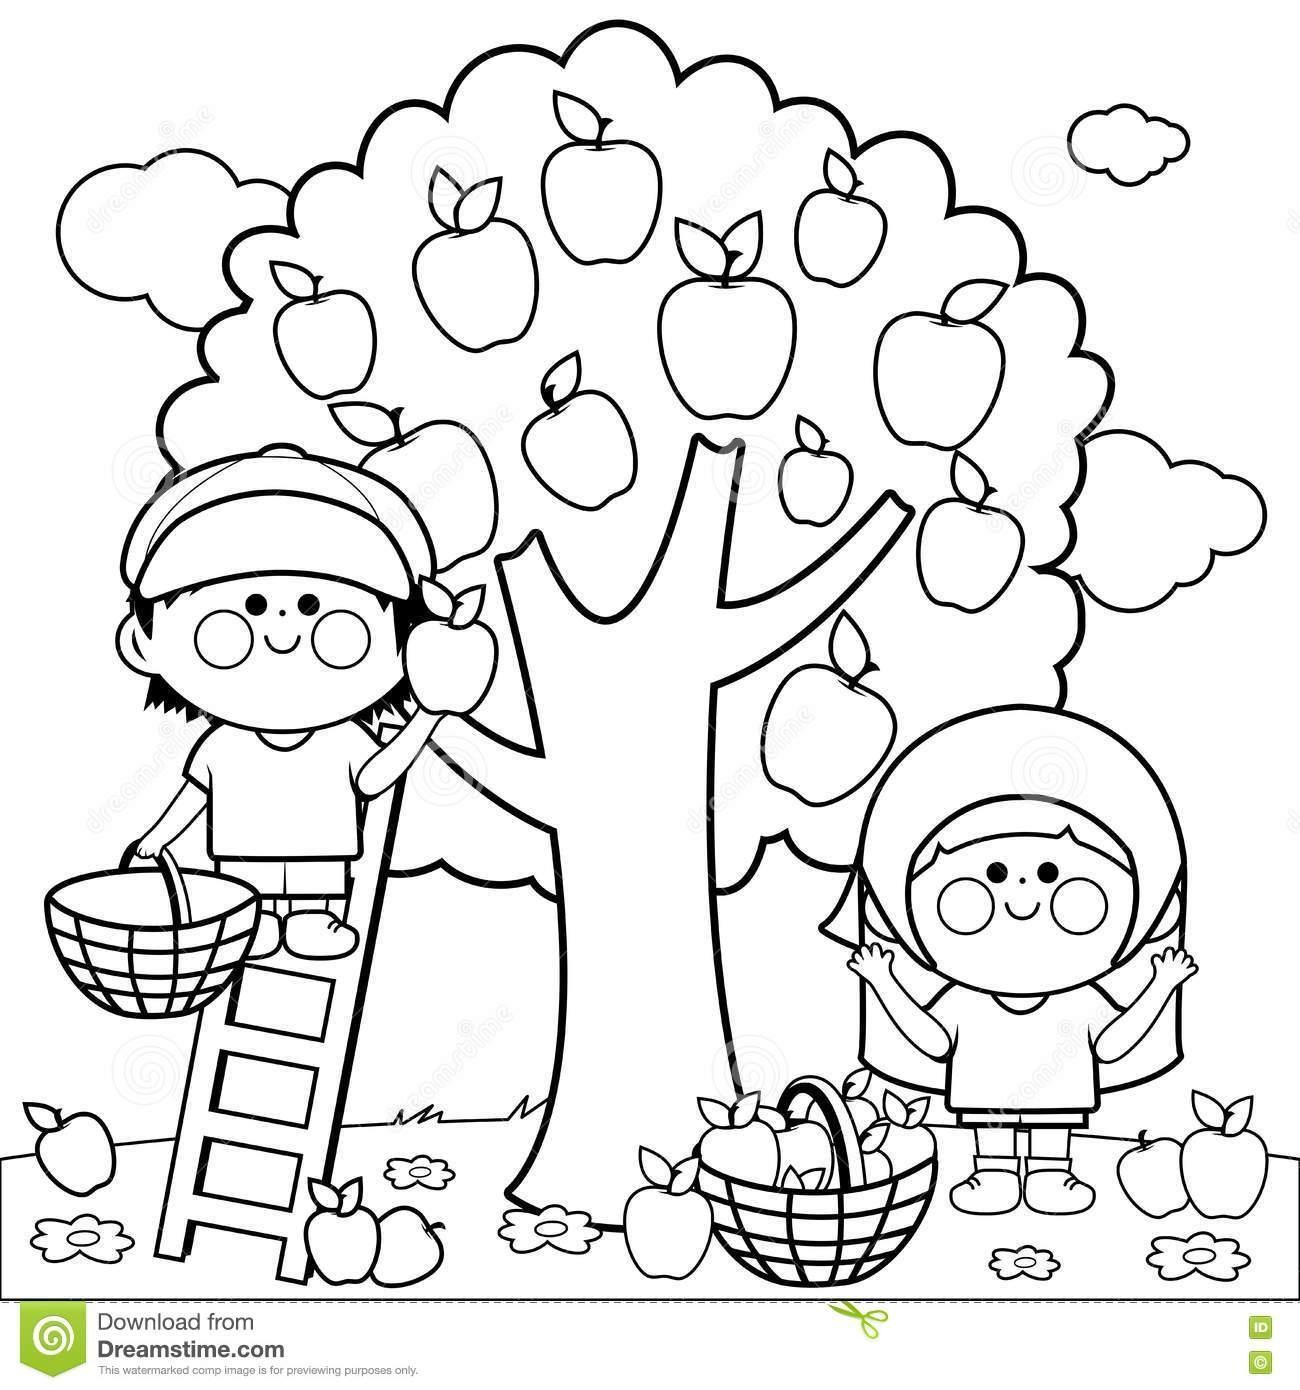 Apple Core Coloring Page At Getcolorings